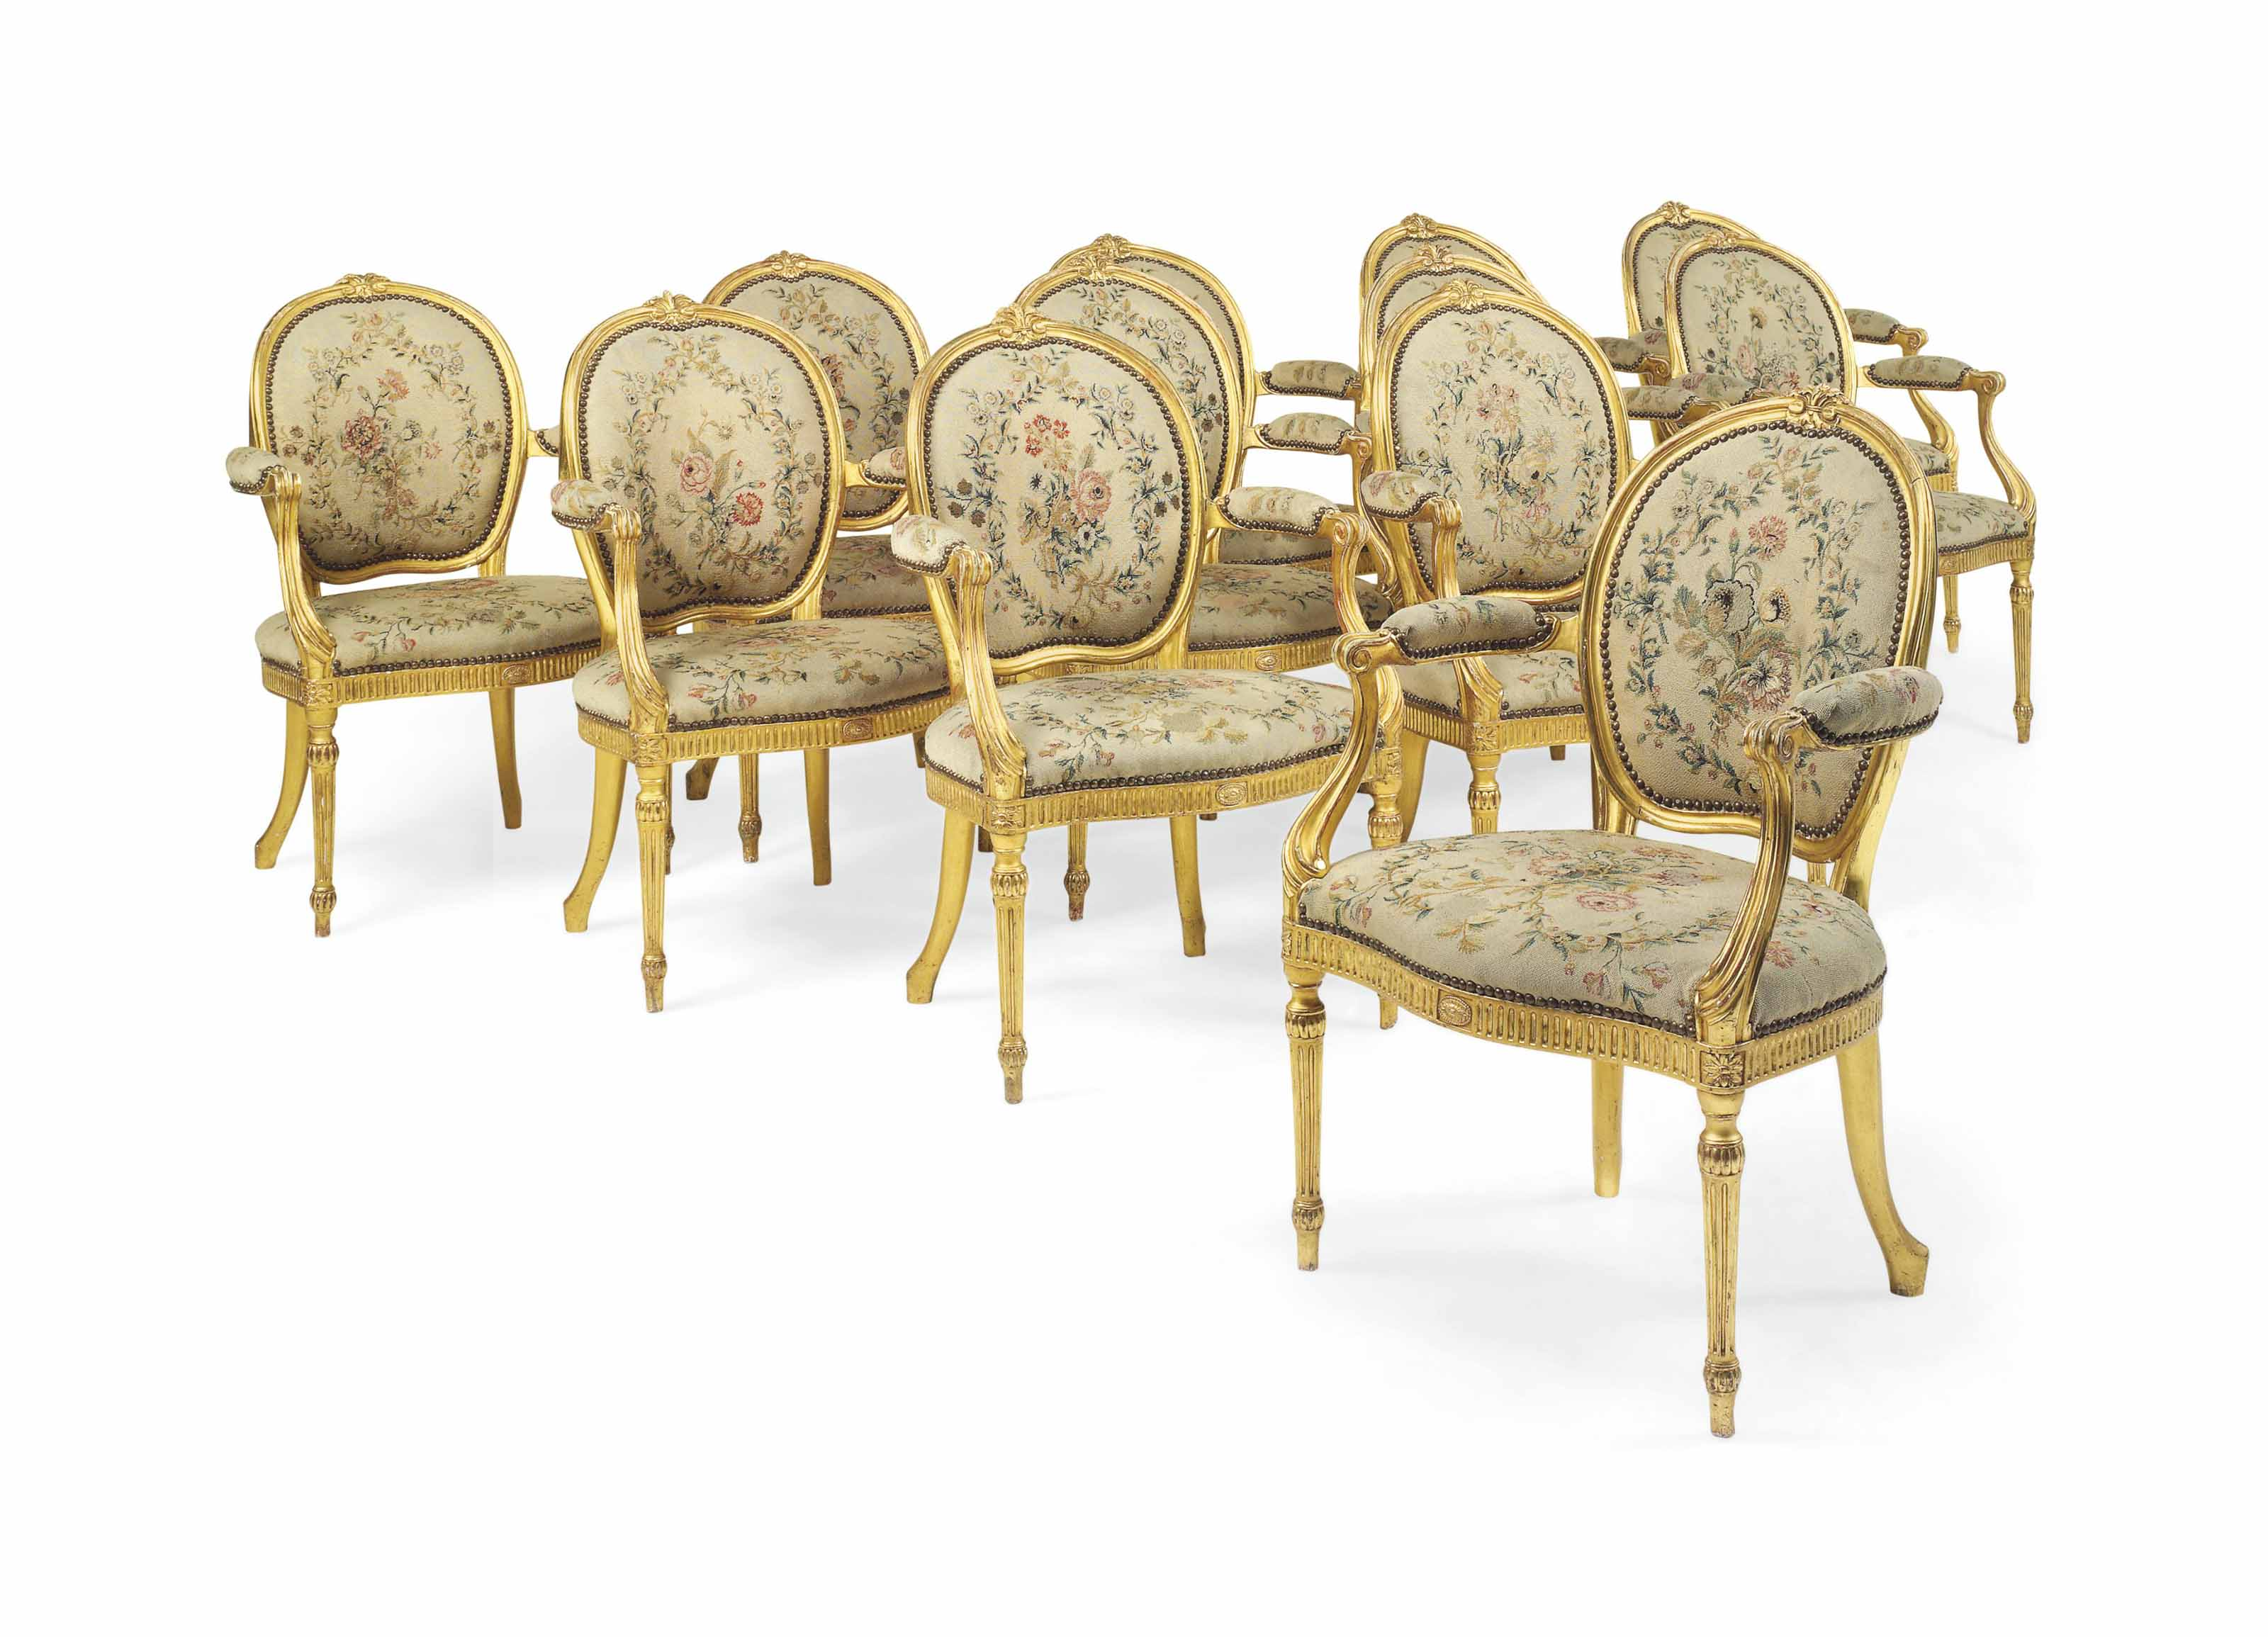 A SET OF TWELVE GEORGE III GILTWOOD OPEN ARMCHAIRS